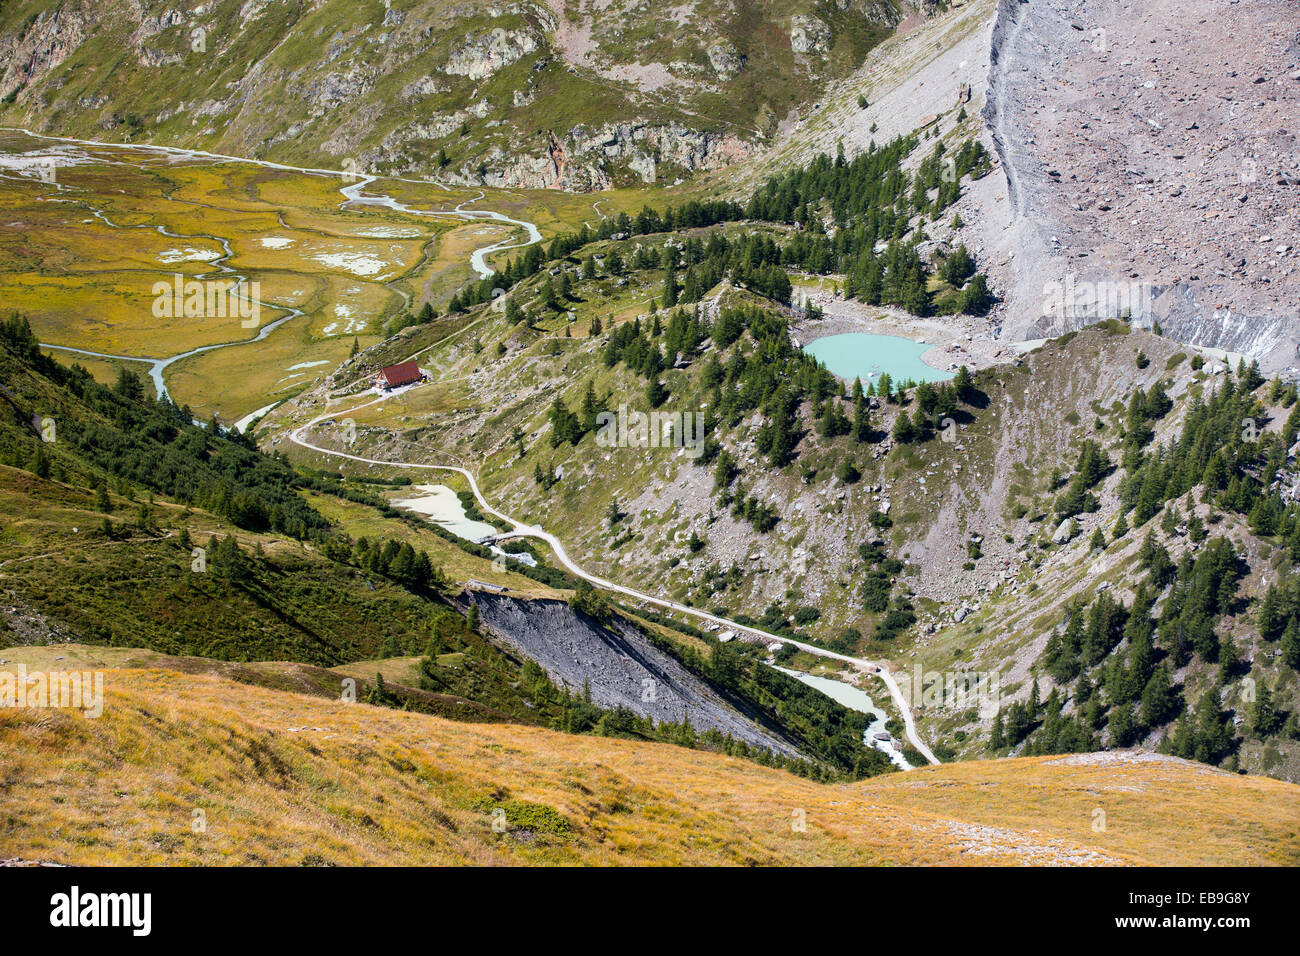 A meltwater lake on the side of the rapidly retreating Glacier du Miage, below Mont Blanc du Courmayeur. - Stock Image